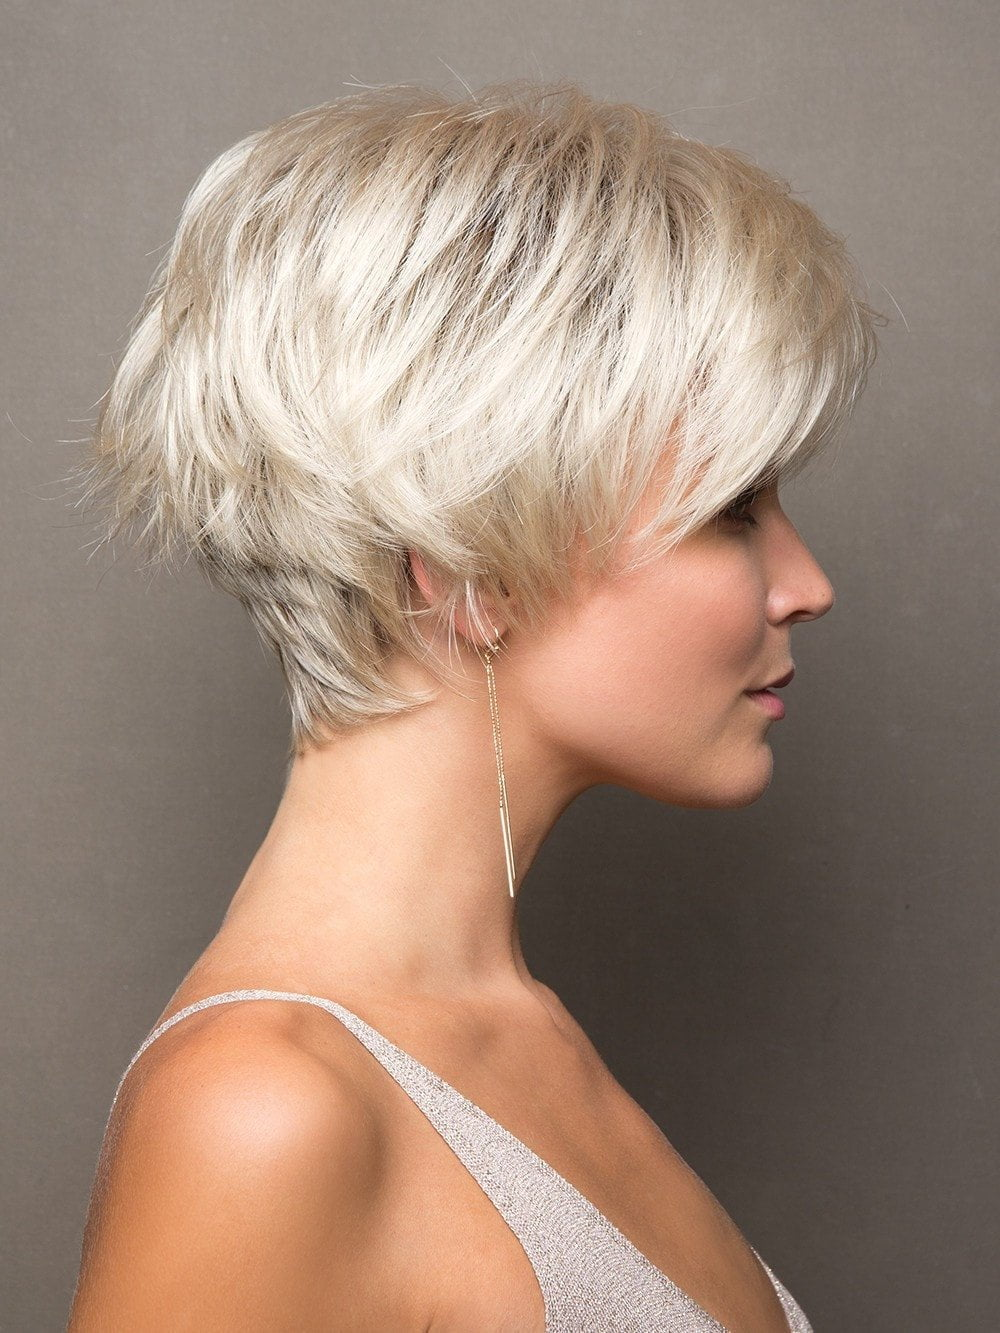 Loads of textured layers give this cut exceptional volume, movement, and style versatility